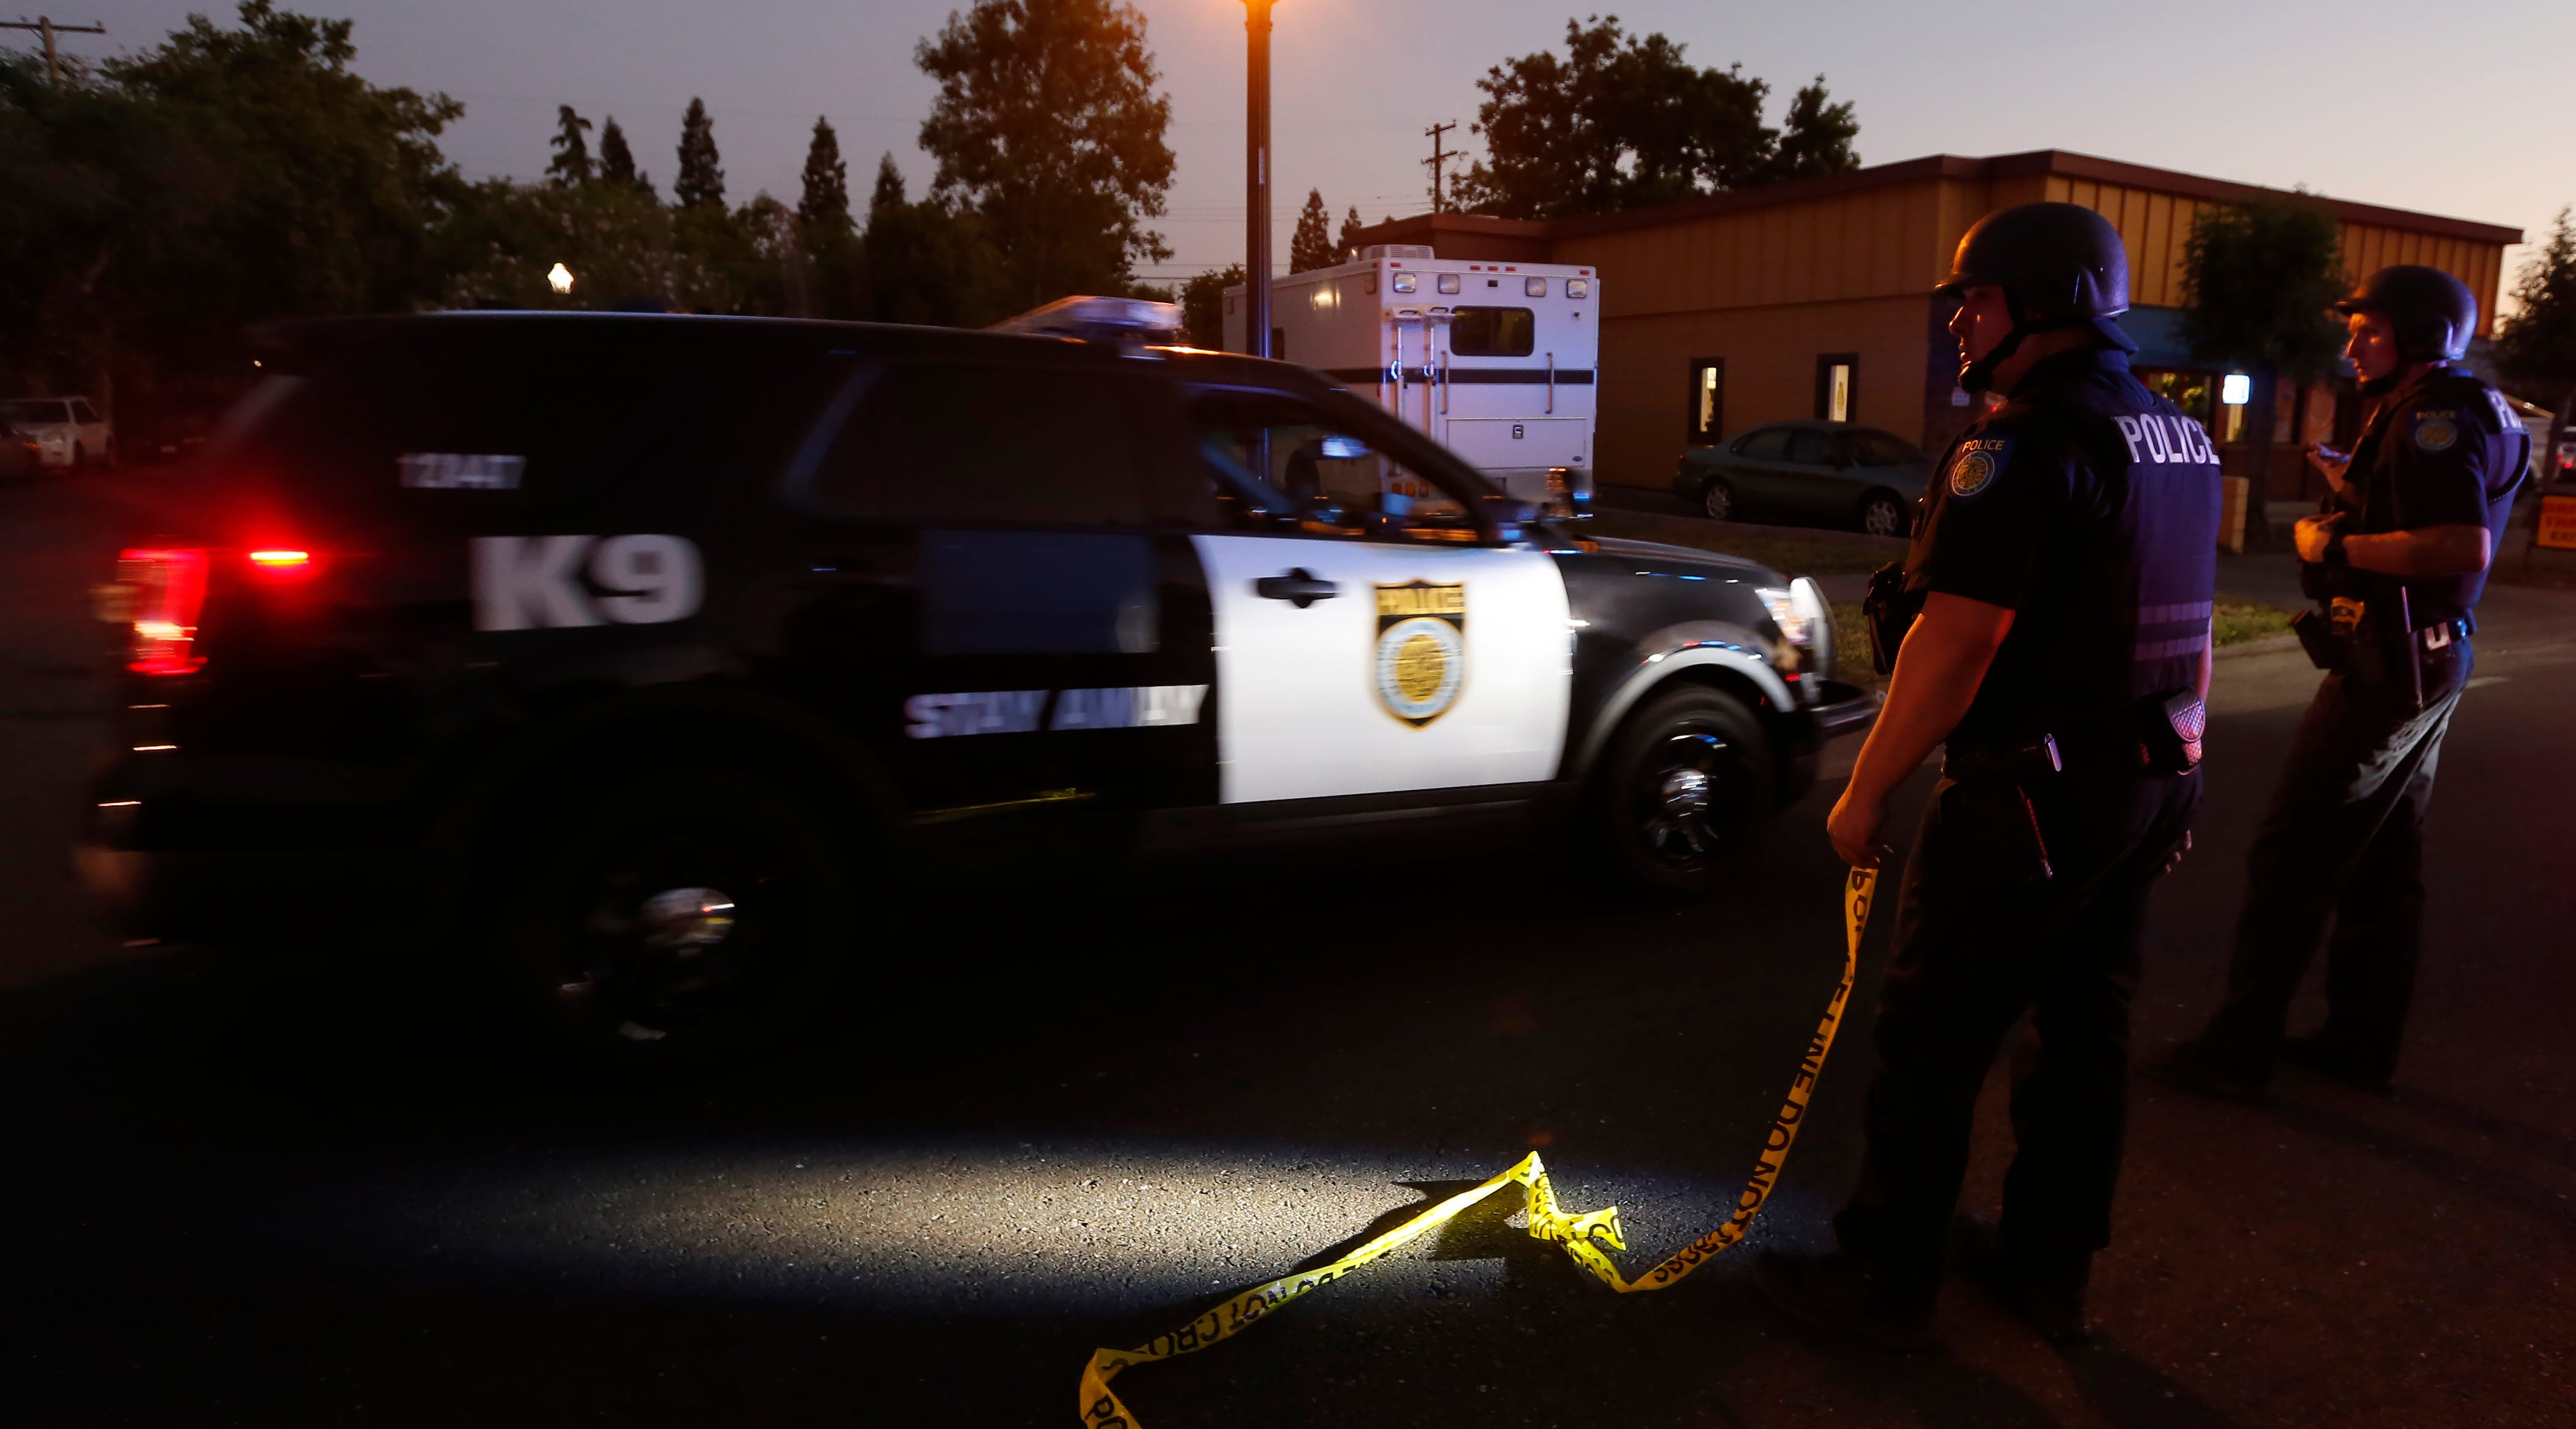 Sacramento police officer dies after long shooting standoff during domestic call